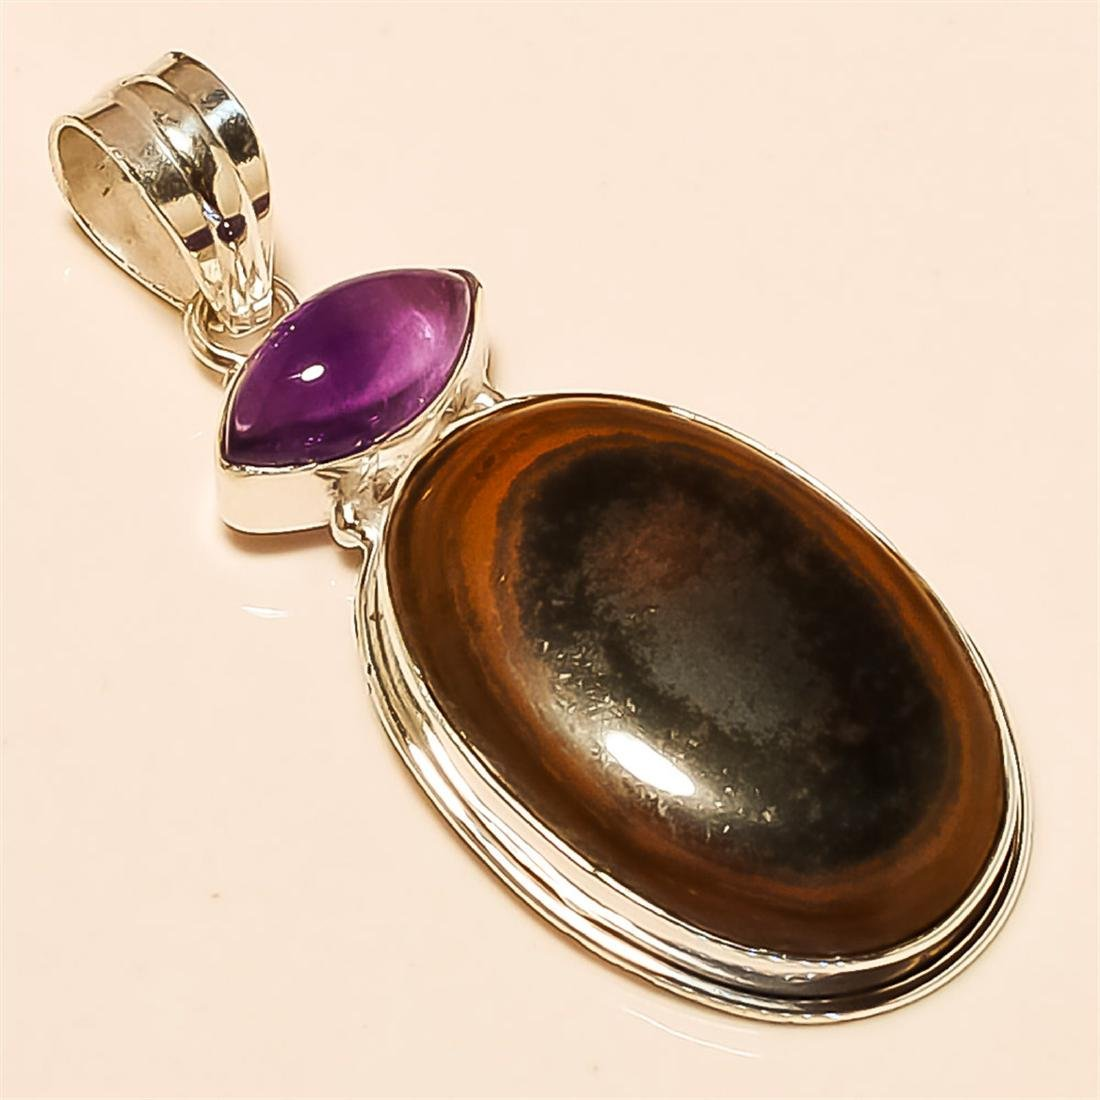 Copper Obsidian/Amethyst   Pendant Solid Sterling